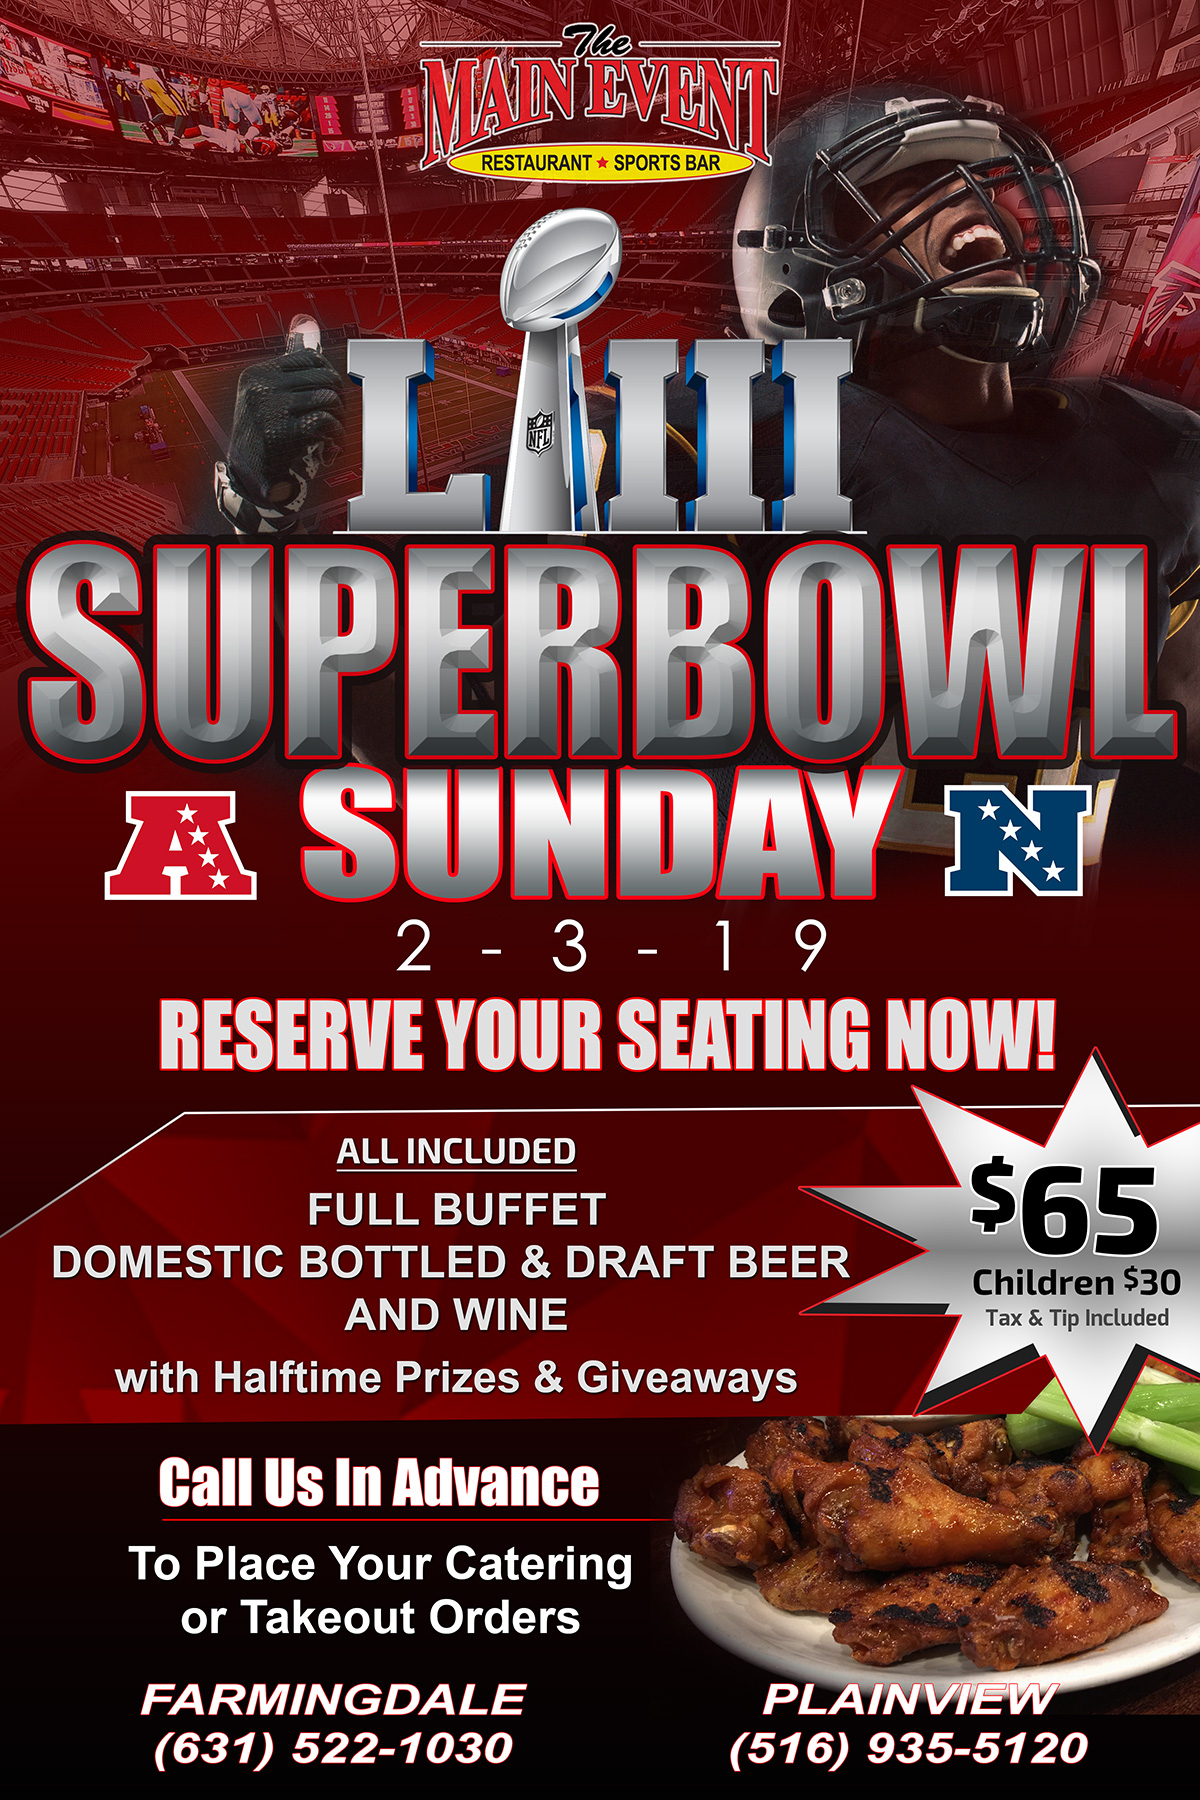 Superbowl party Feb. 3rd